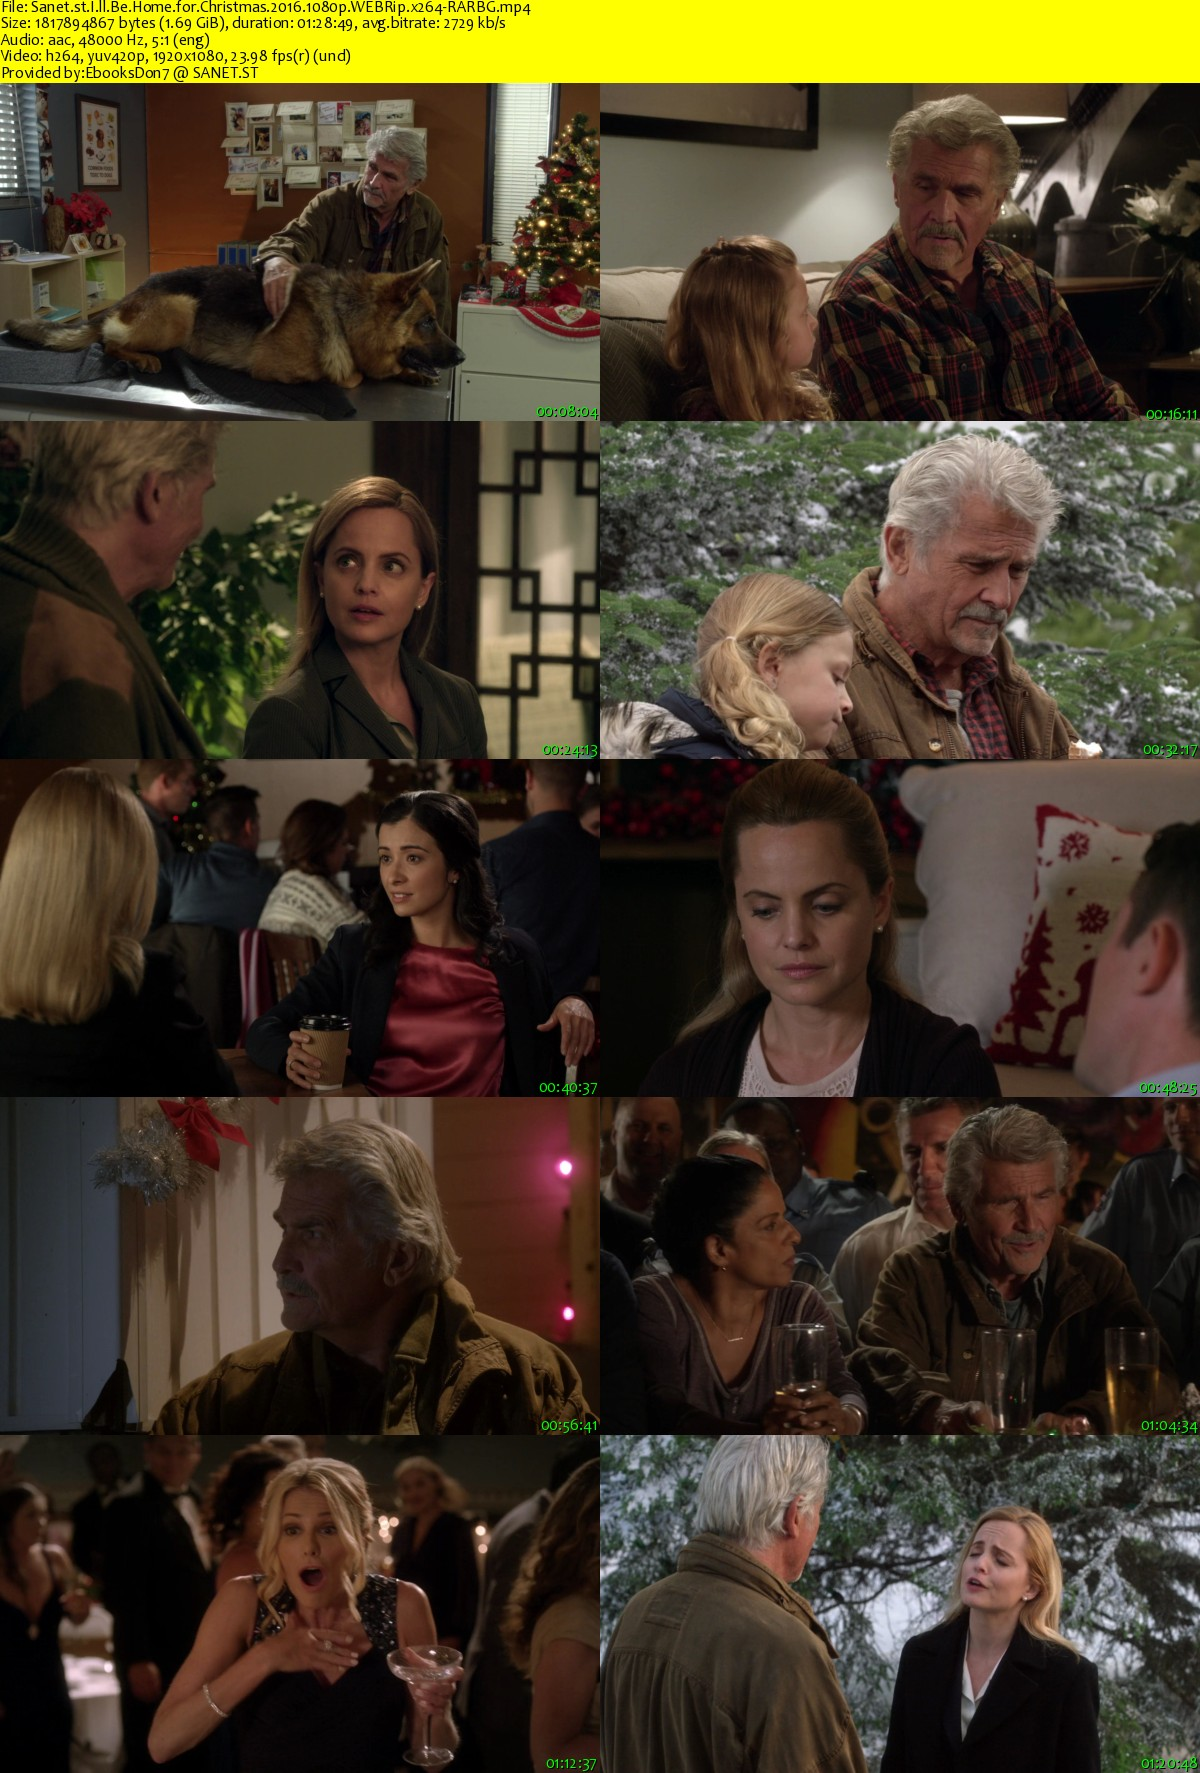 Ill Be Home For Christmas 2016.Download I Ll Be Home For Christmas 2016 1080p Webrip X264